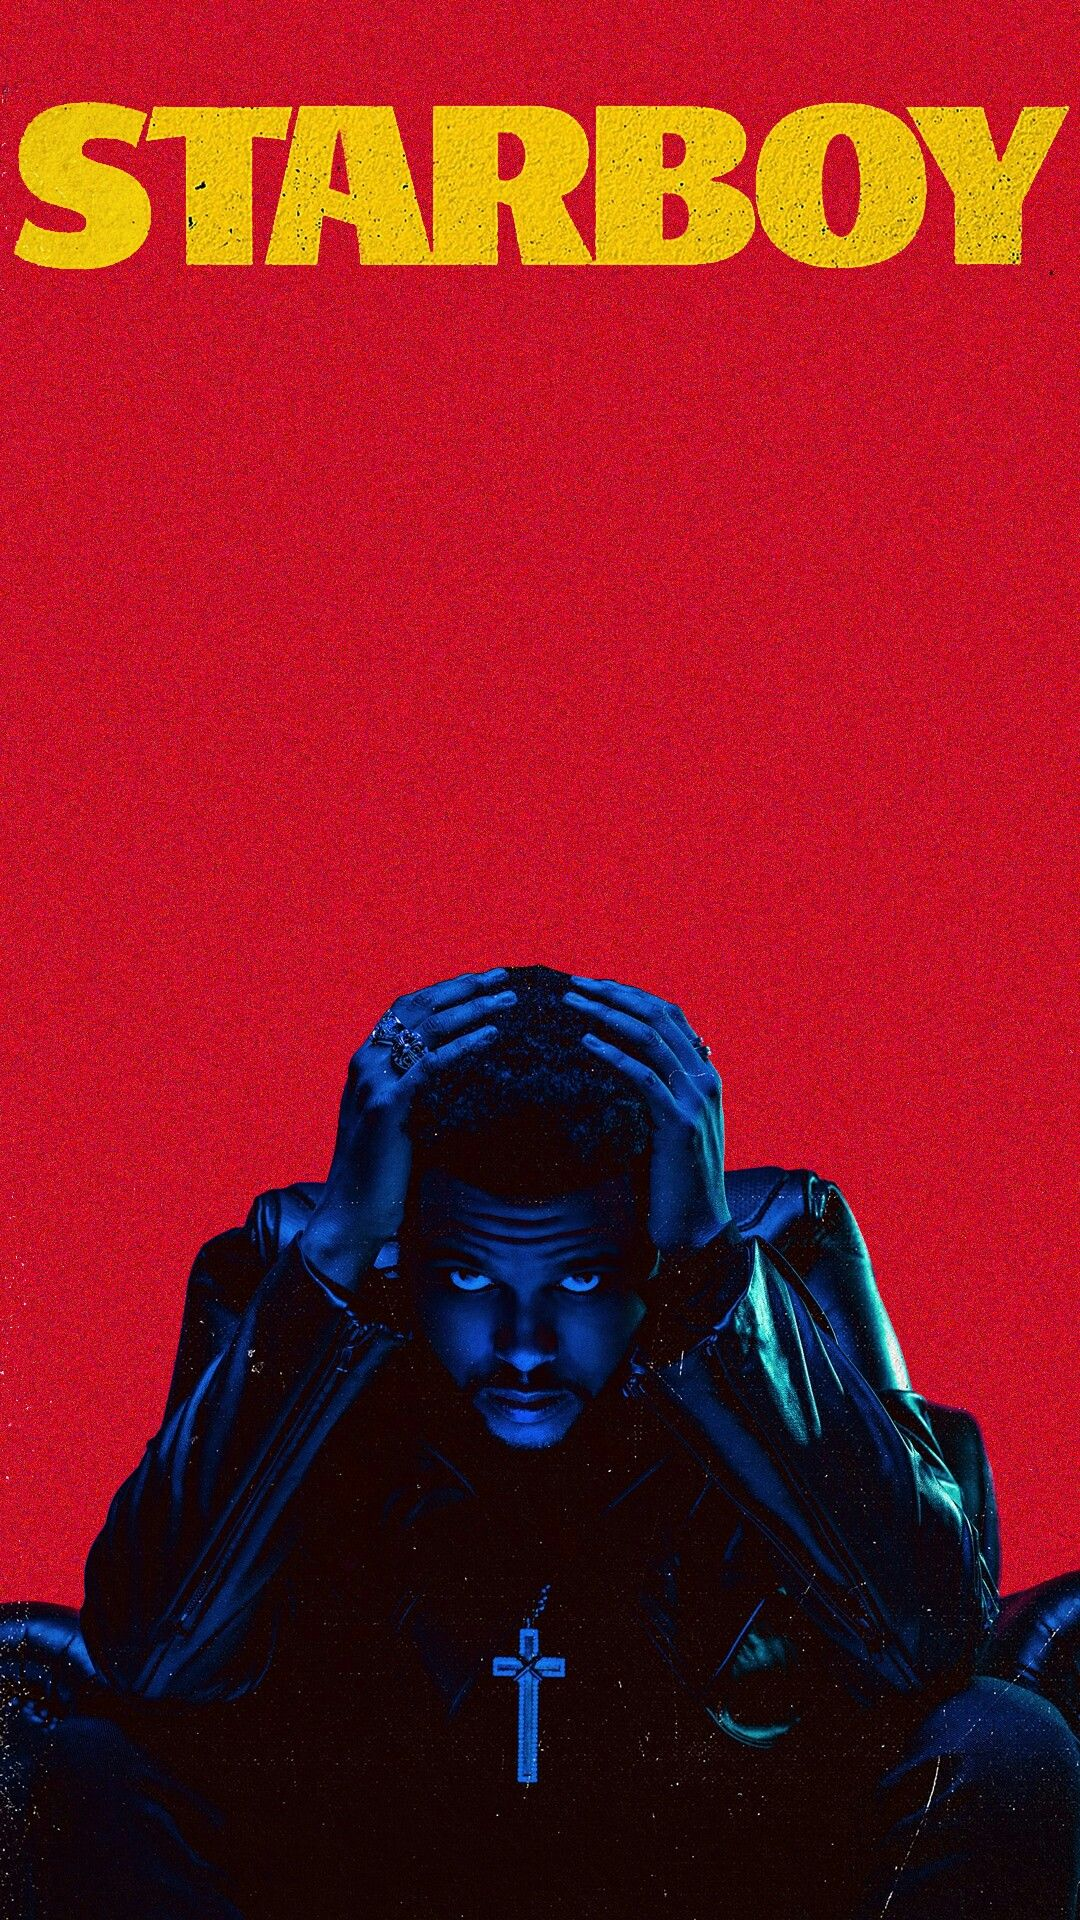 Boy The Weeknd Wallpapers Top Free Boy The Weeknd Backgrounds